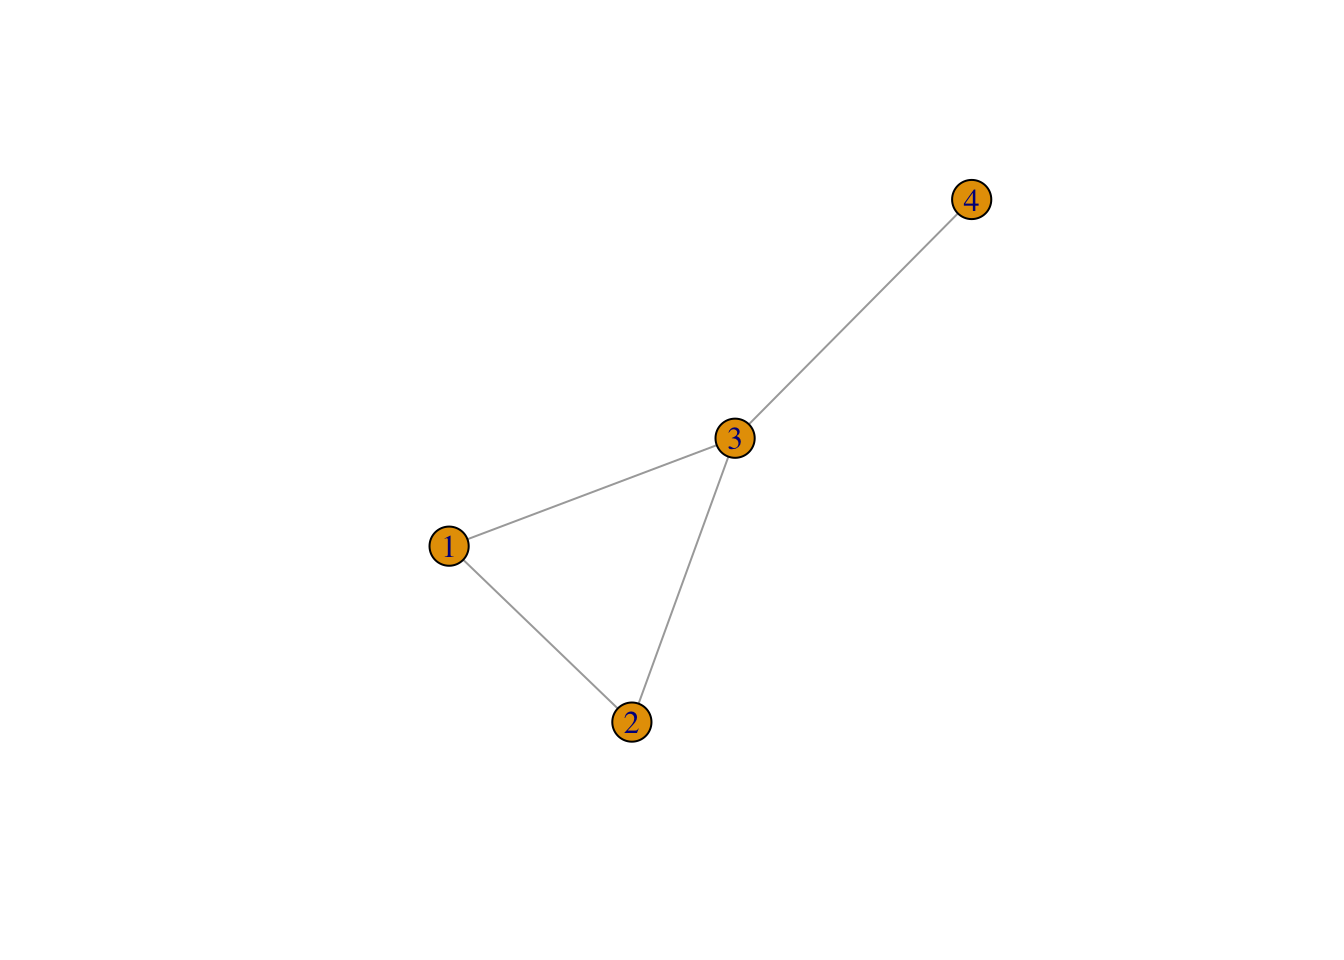 A simple network, g1